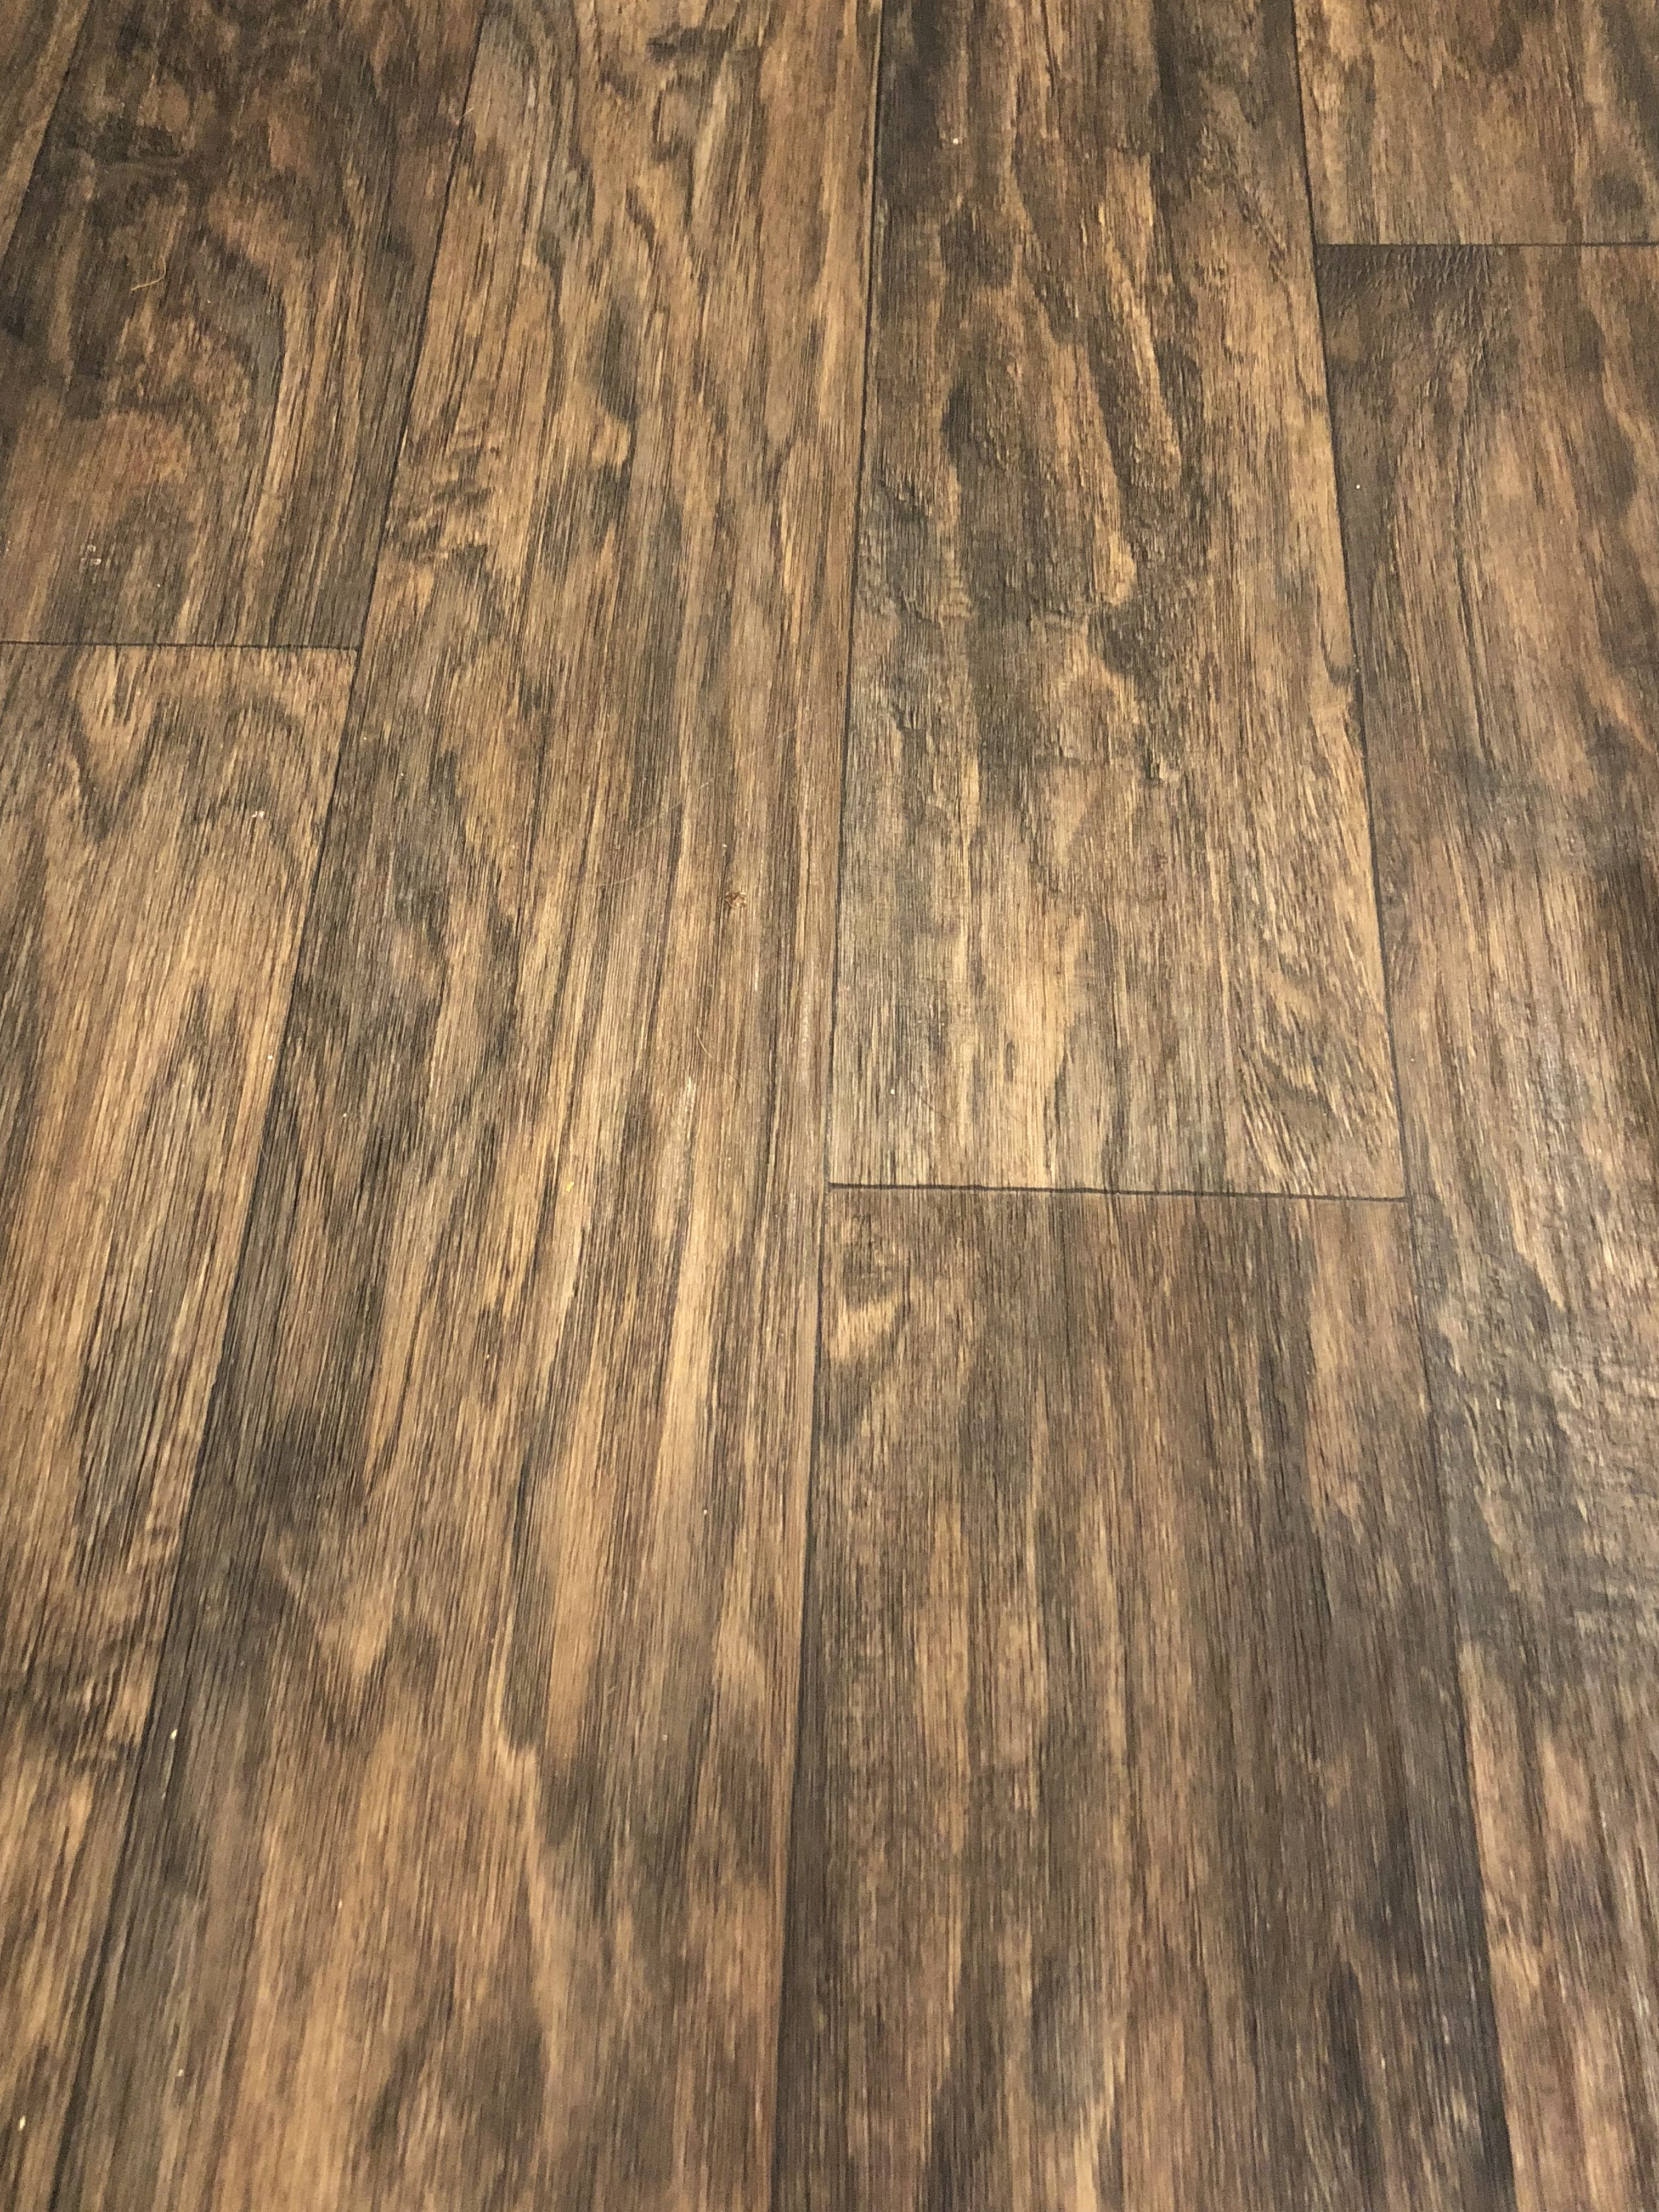 My Flooring Help Me Find The Match To It So I Can Buy More For Our Addition 2003 Luxury Vinyl Wide Wood Plank Inspired F Flooring Luxury Vinyl Wood Planks